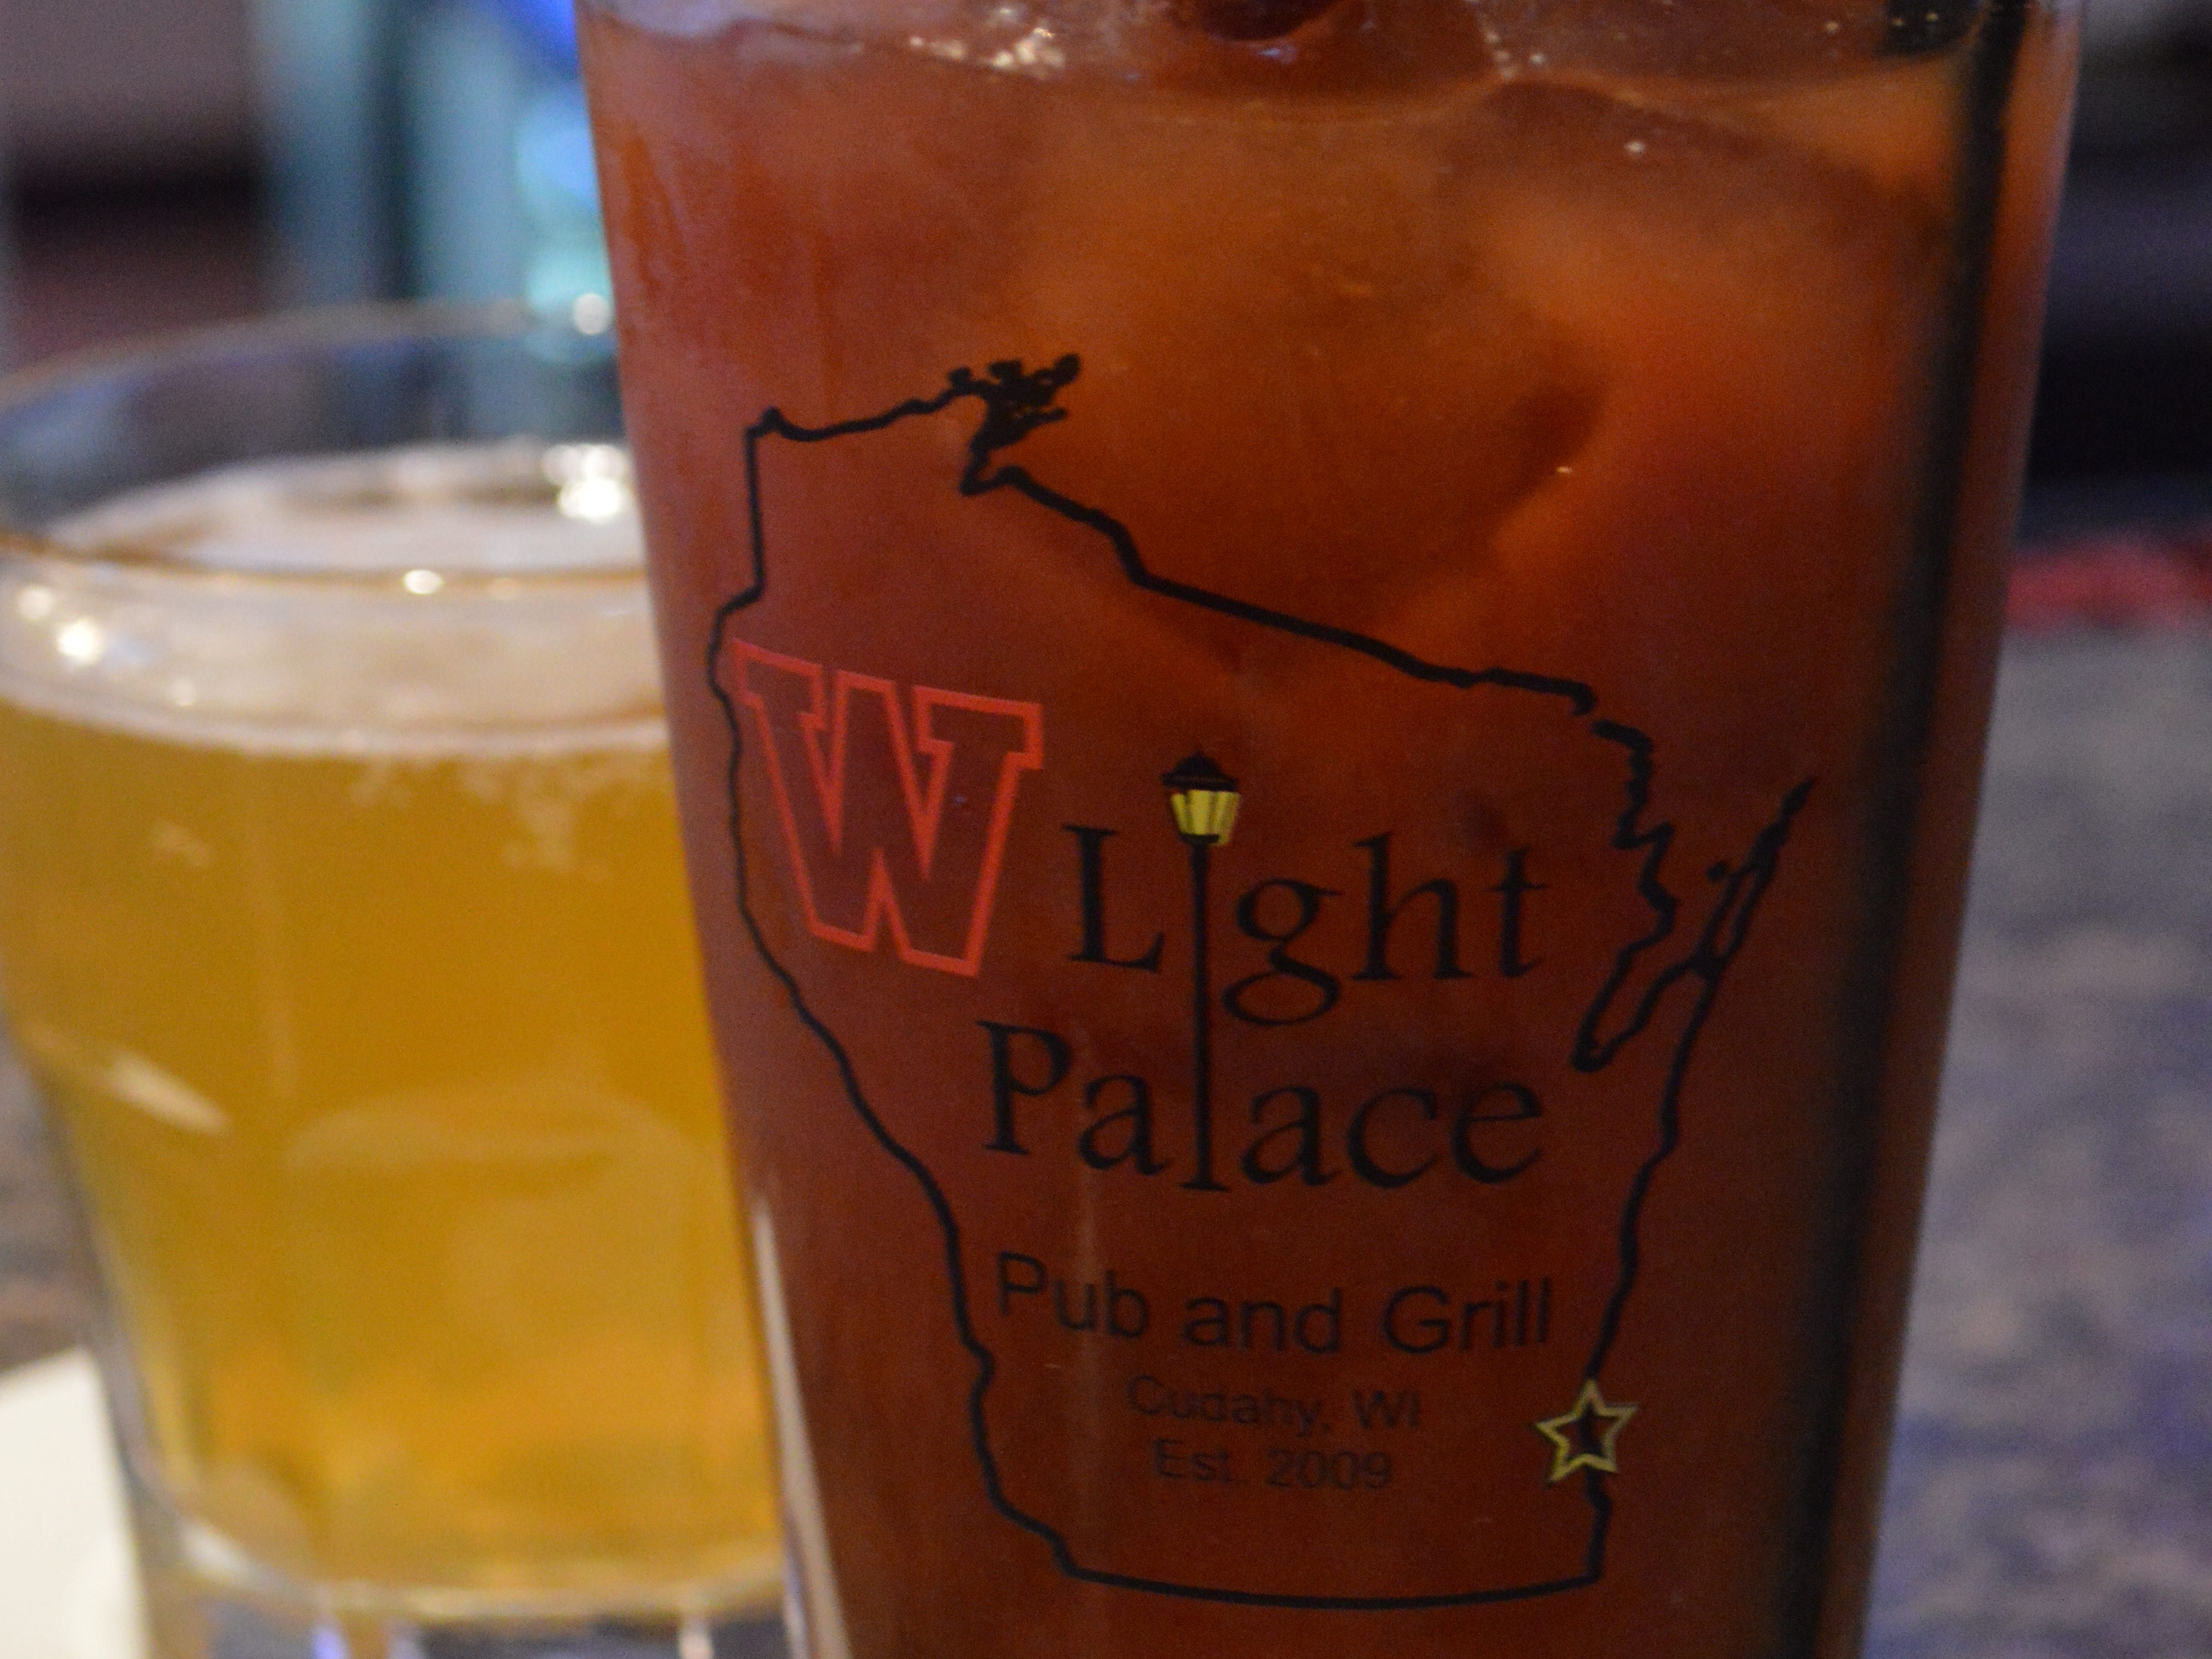 Light Palace's most popular drink is its bloody mary, which is made from scratch. It's garnished with a lime, olive, pickle, pickled Brussel sprout, pickled mushroom, cheese cube and beef stick. It costs $6 Monday through Friday, and $5 on Saturday and Sunday.